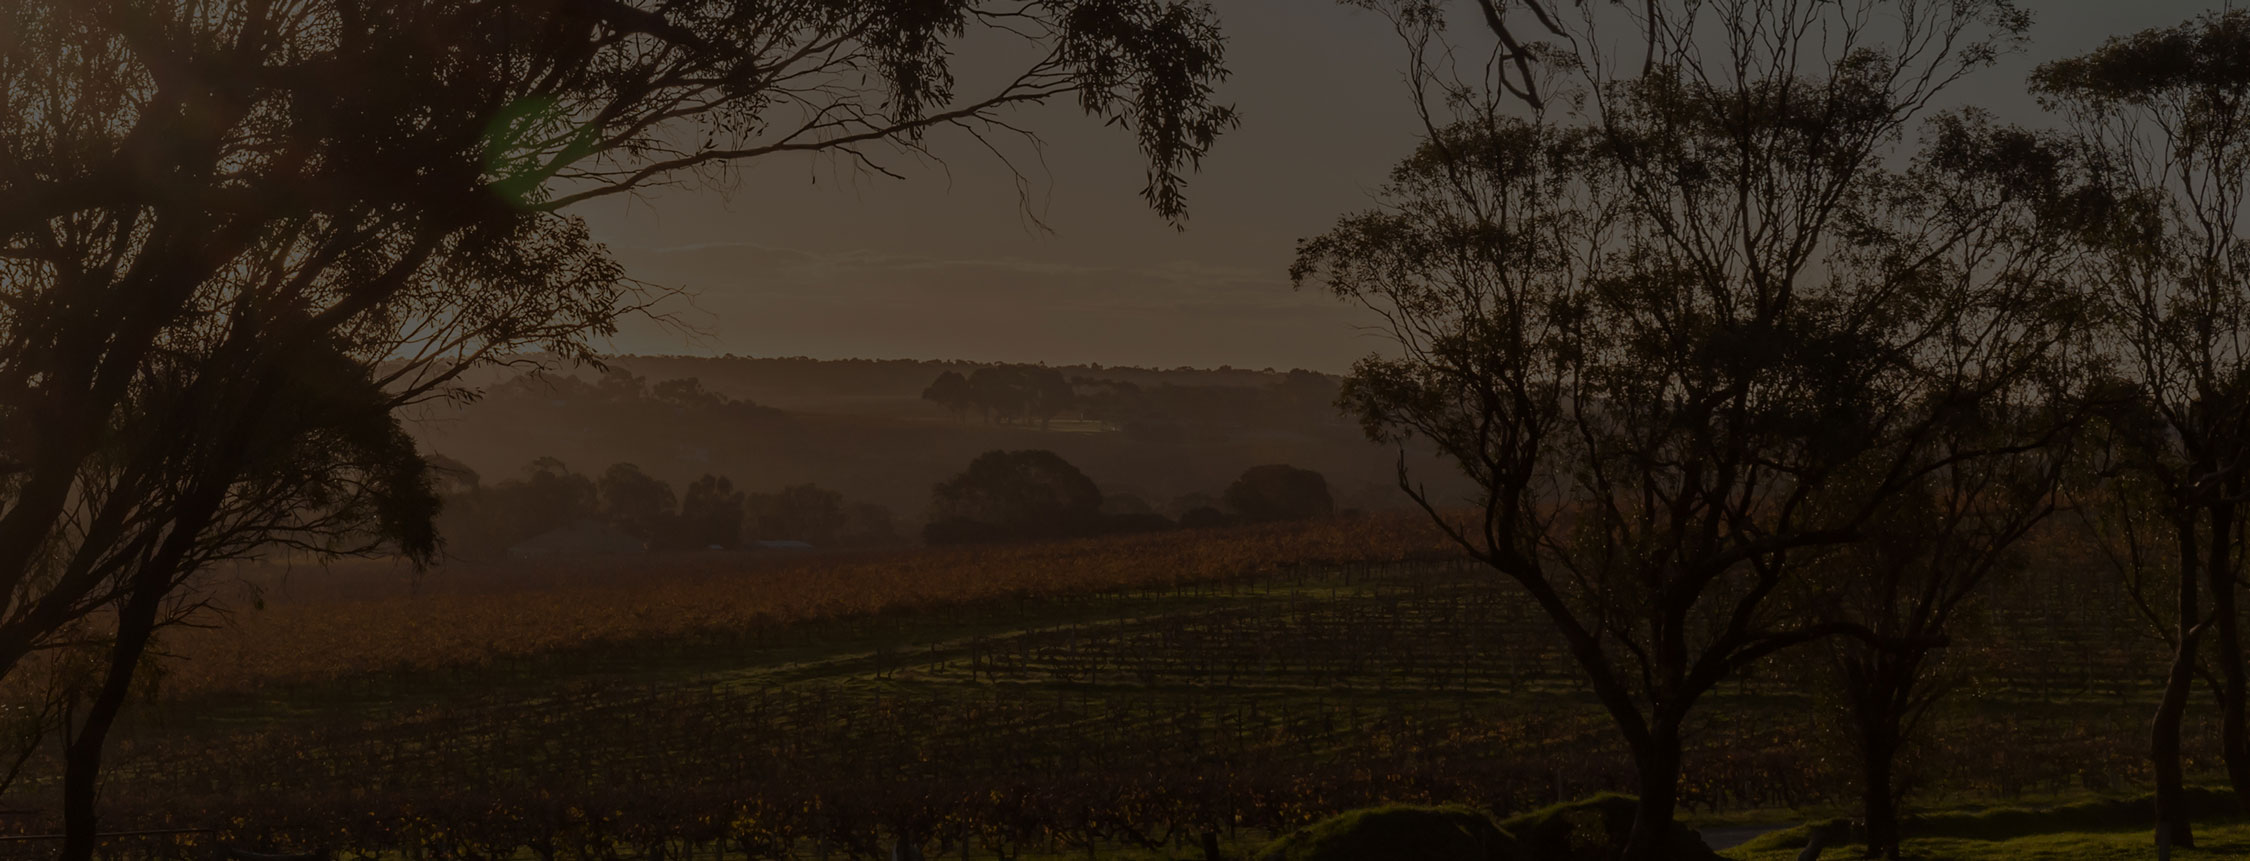 A landscape image of a wine vineyard sunset